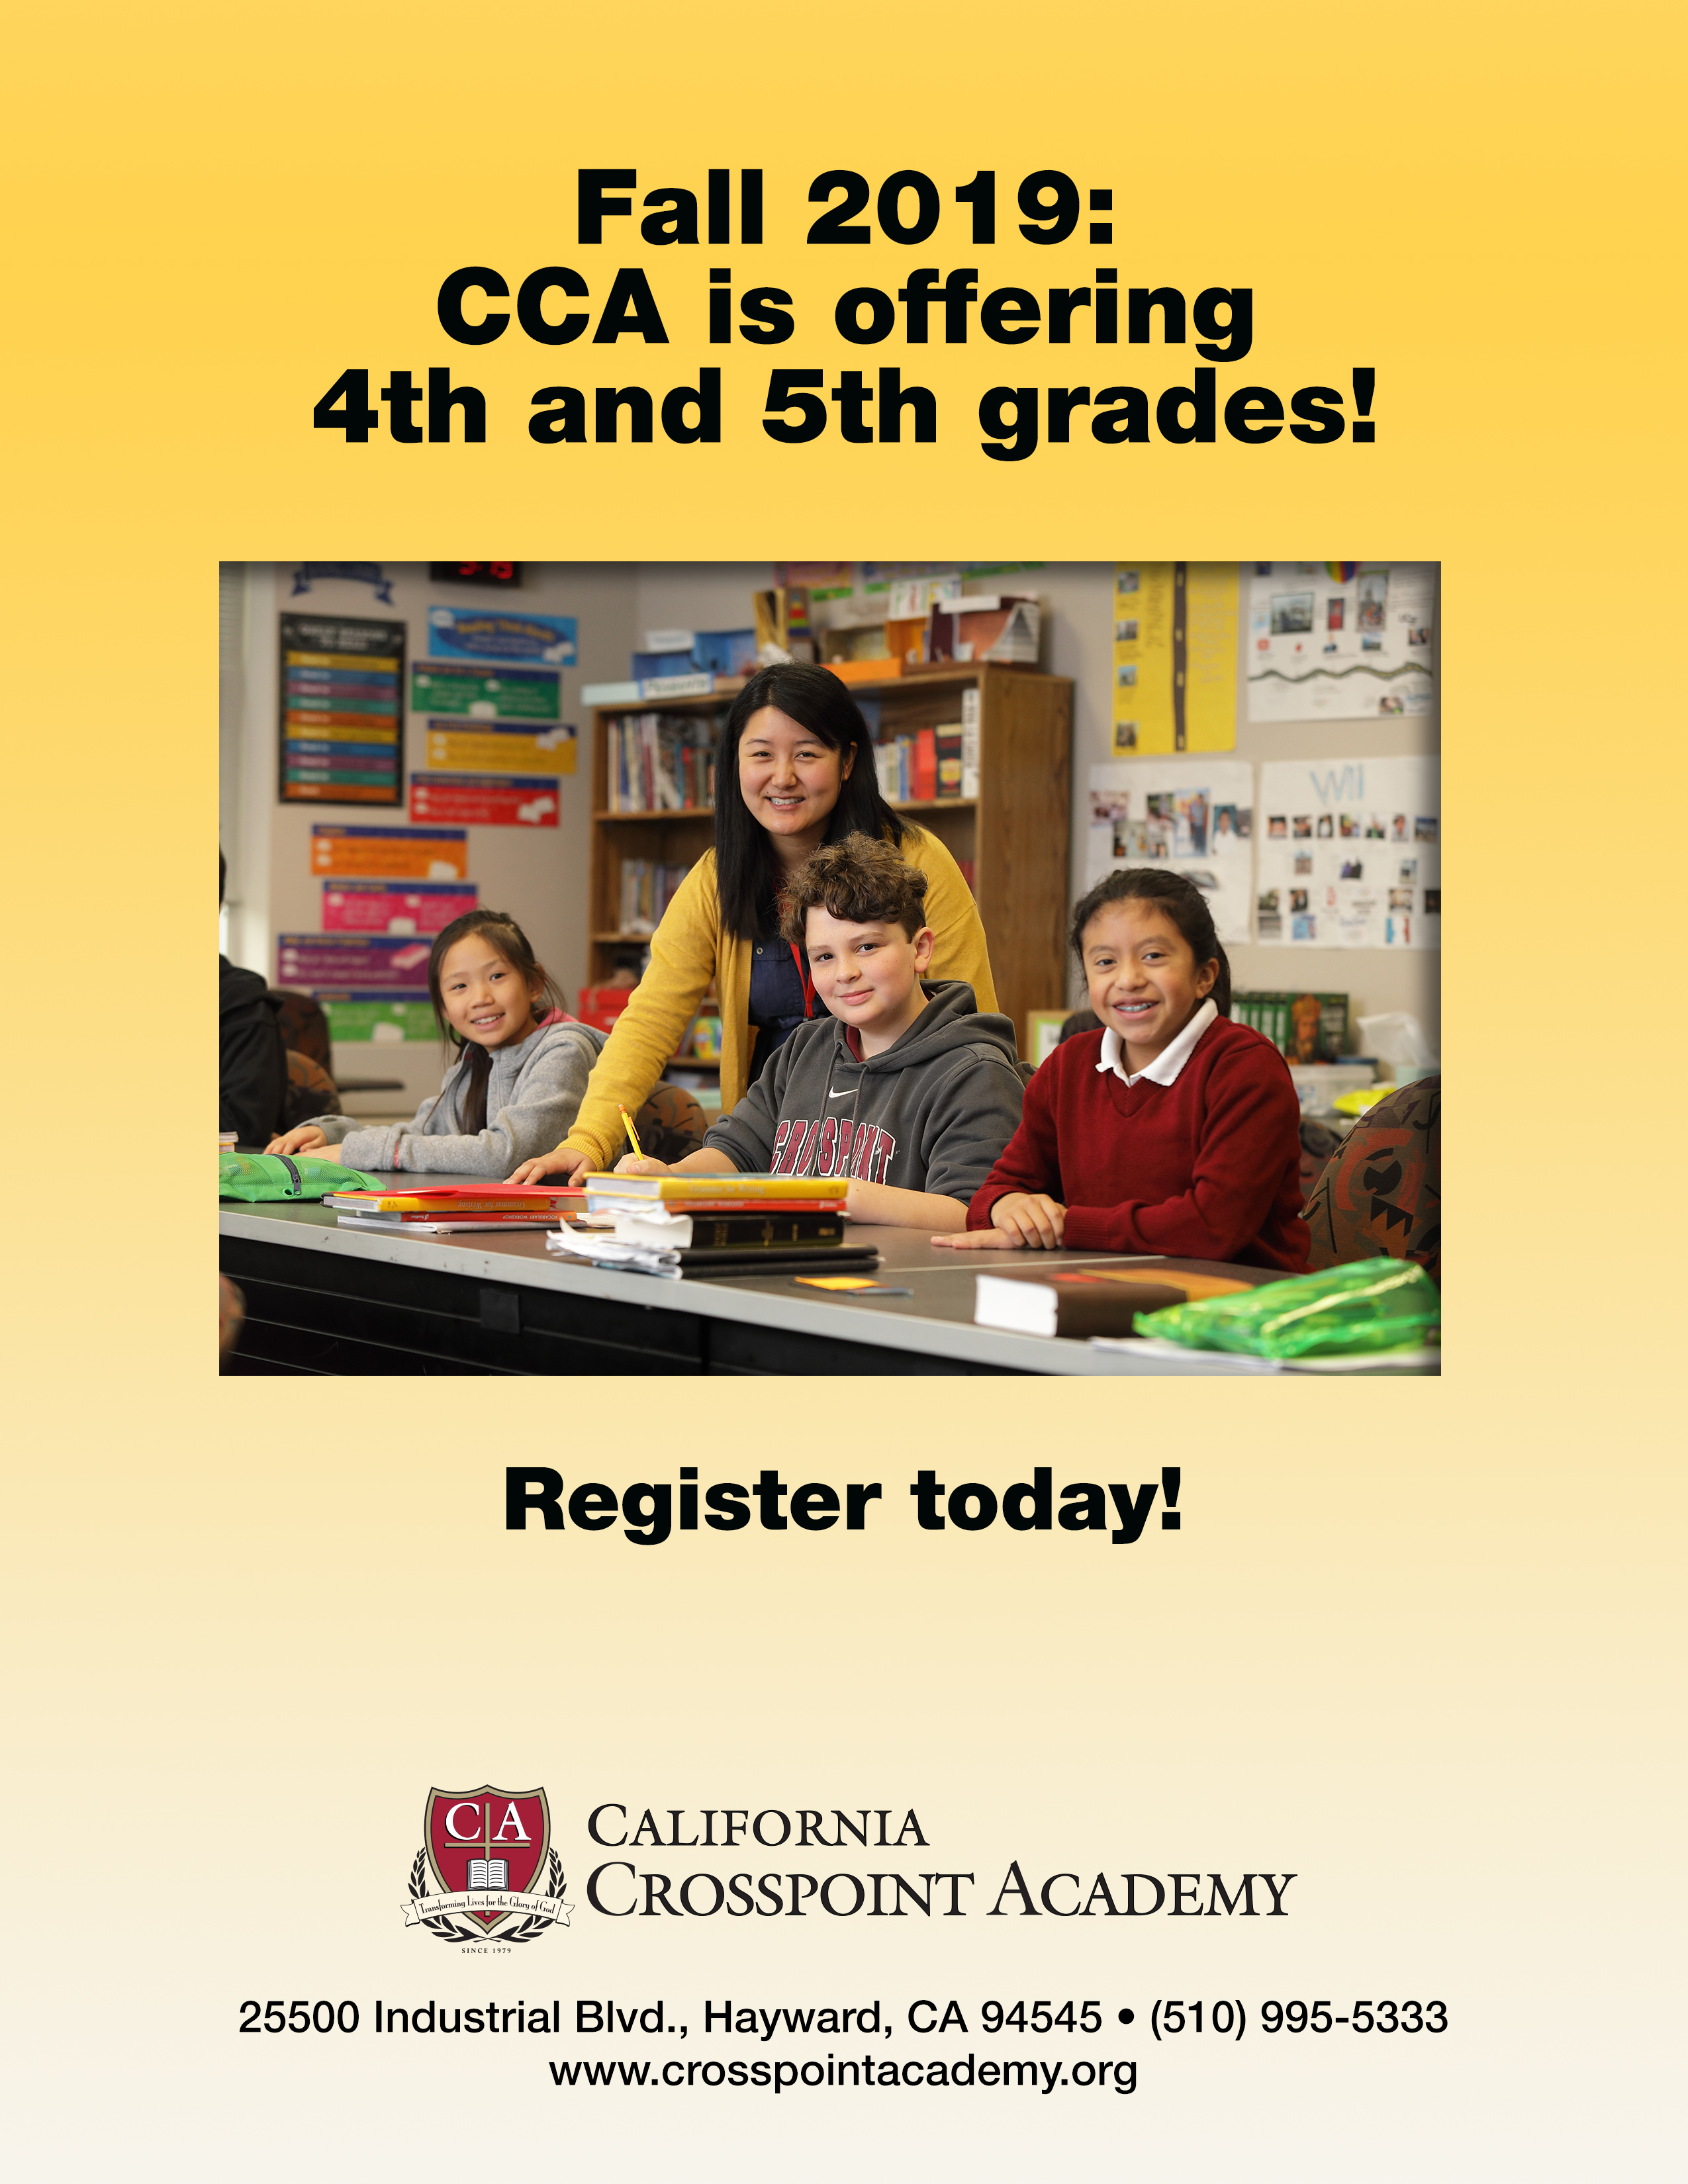 CCA Adding 4th And 5th Grades This Fall!